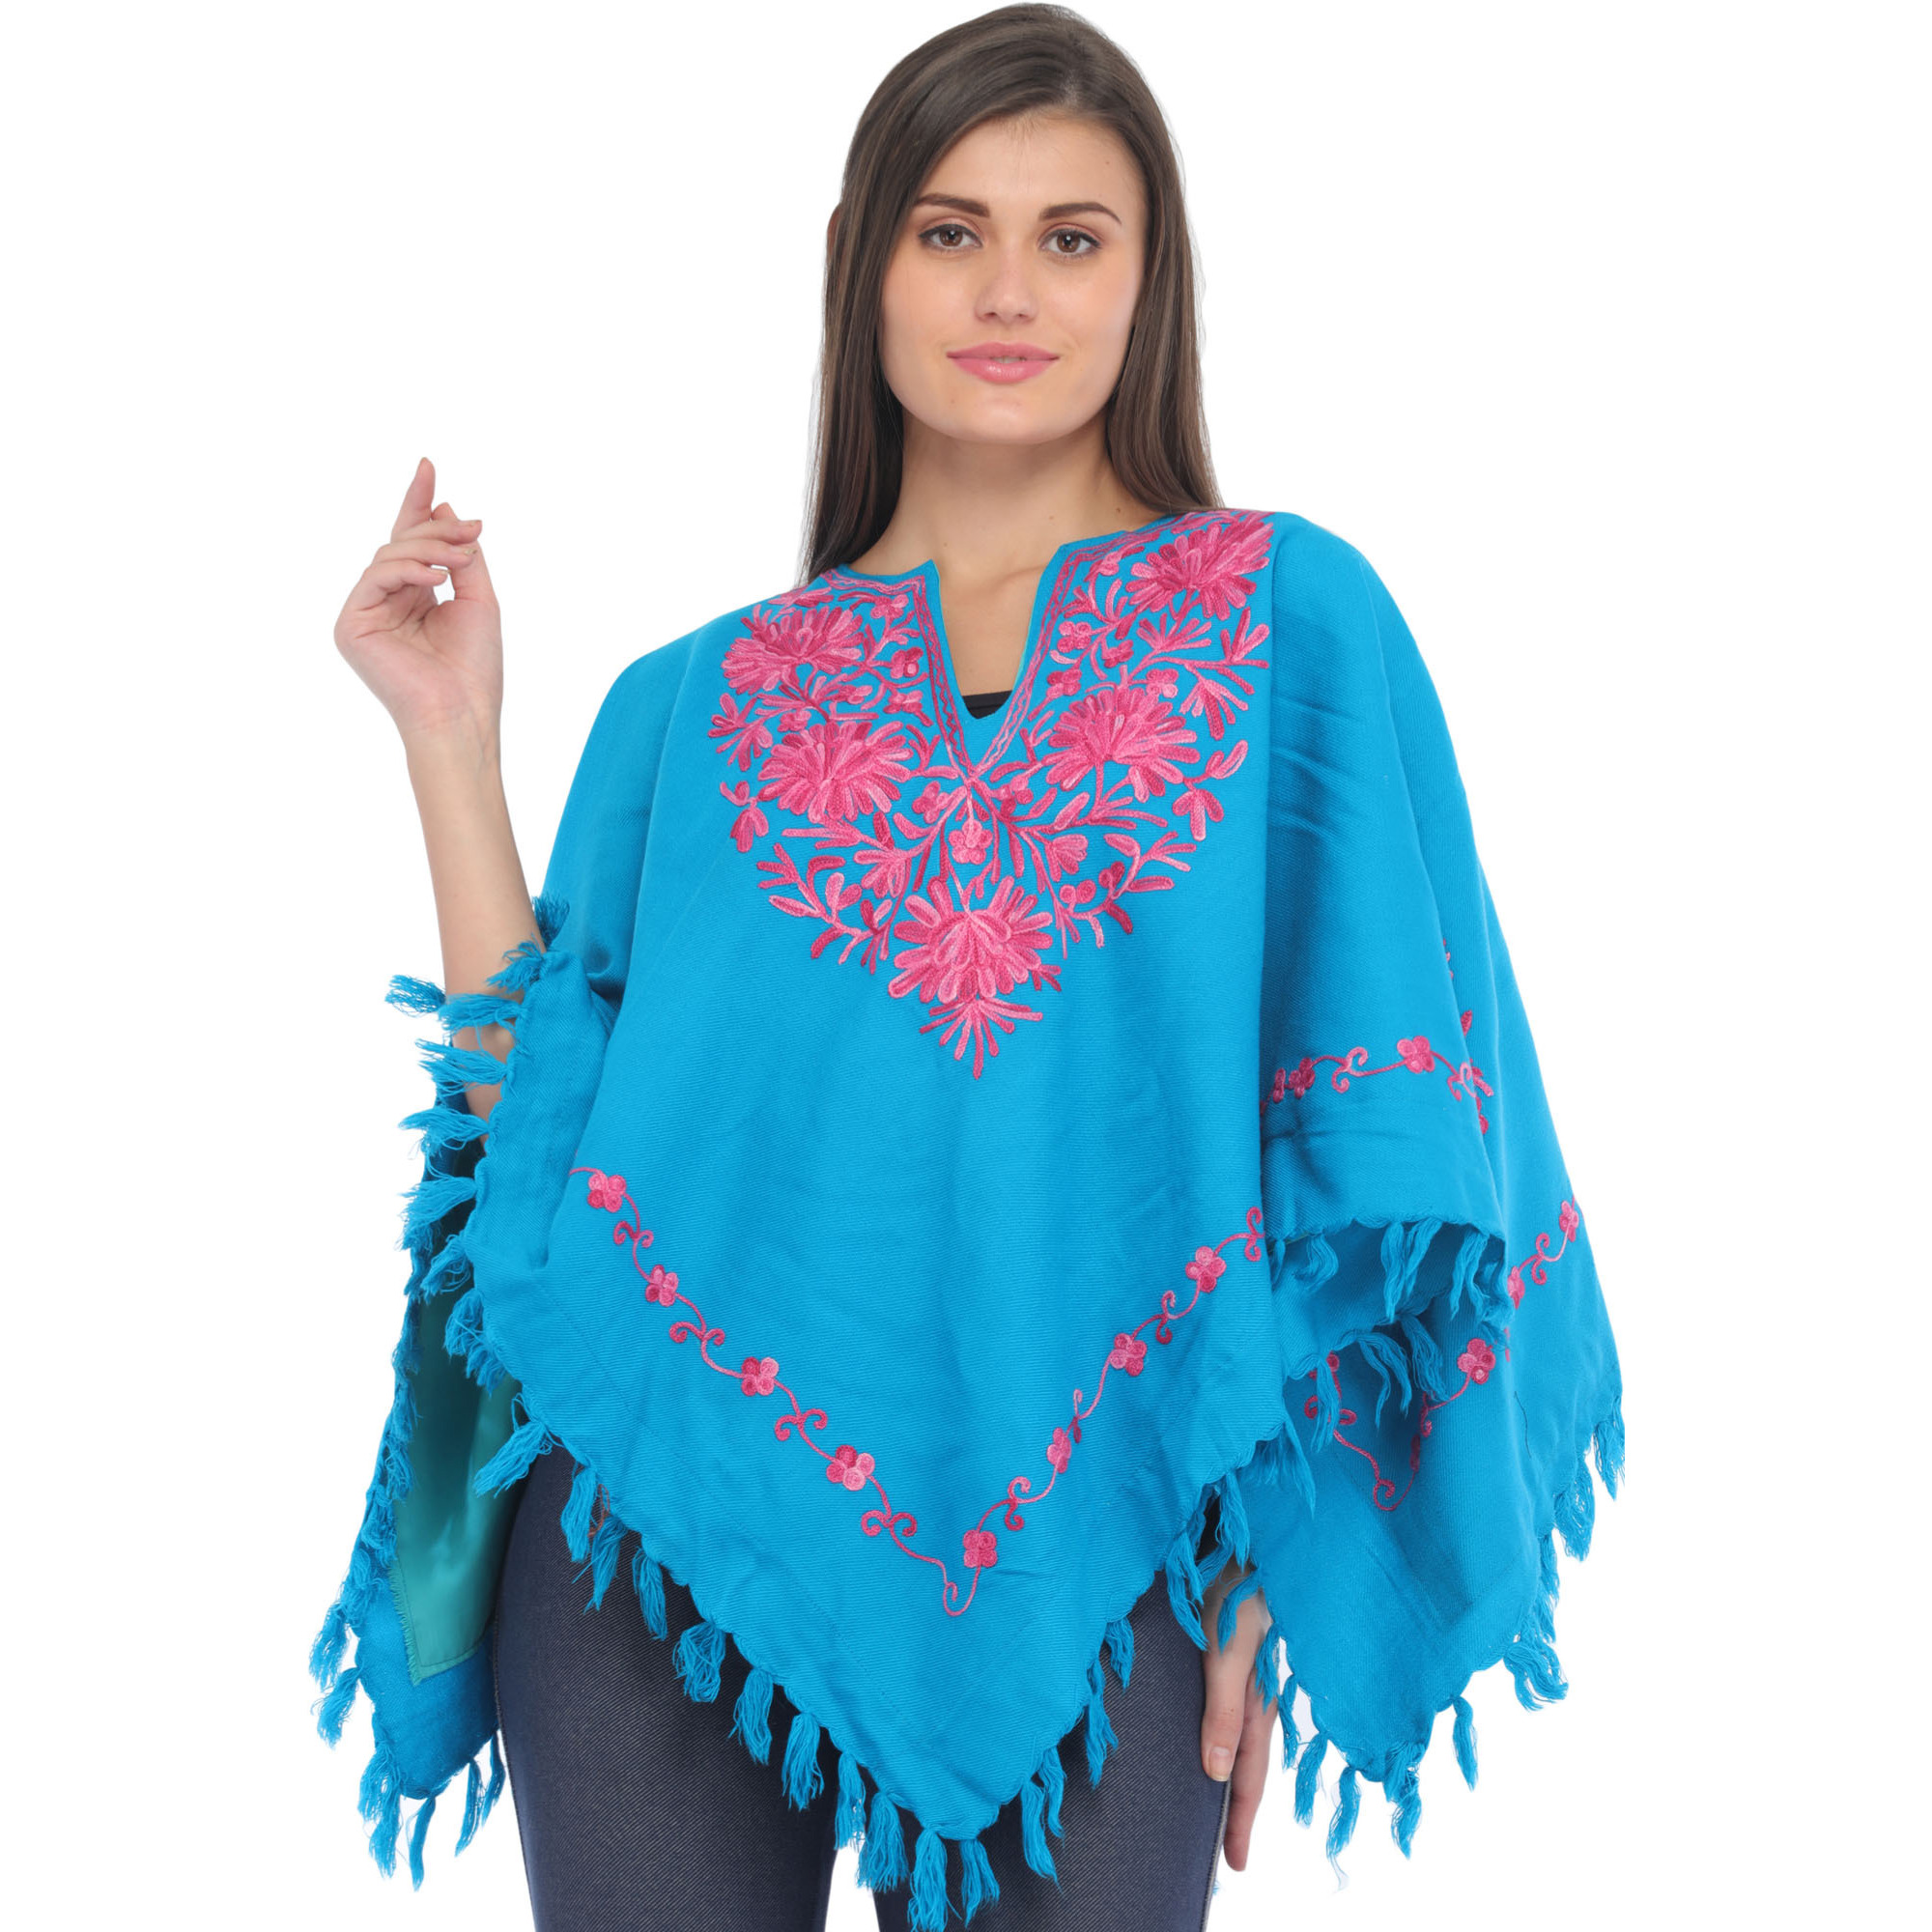 Vivid-Blue Poncho from Kashmir with Ari-Embroidered Flowers on Neck